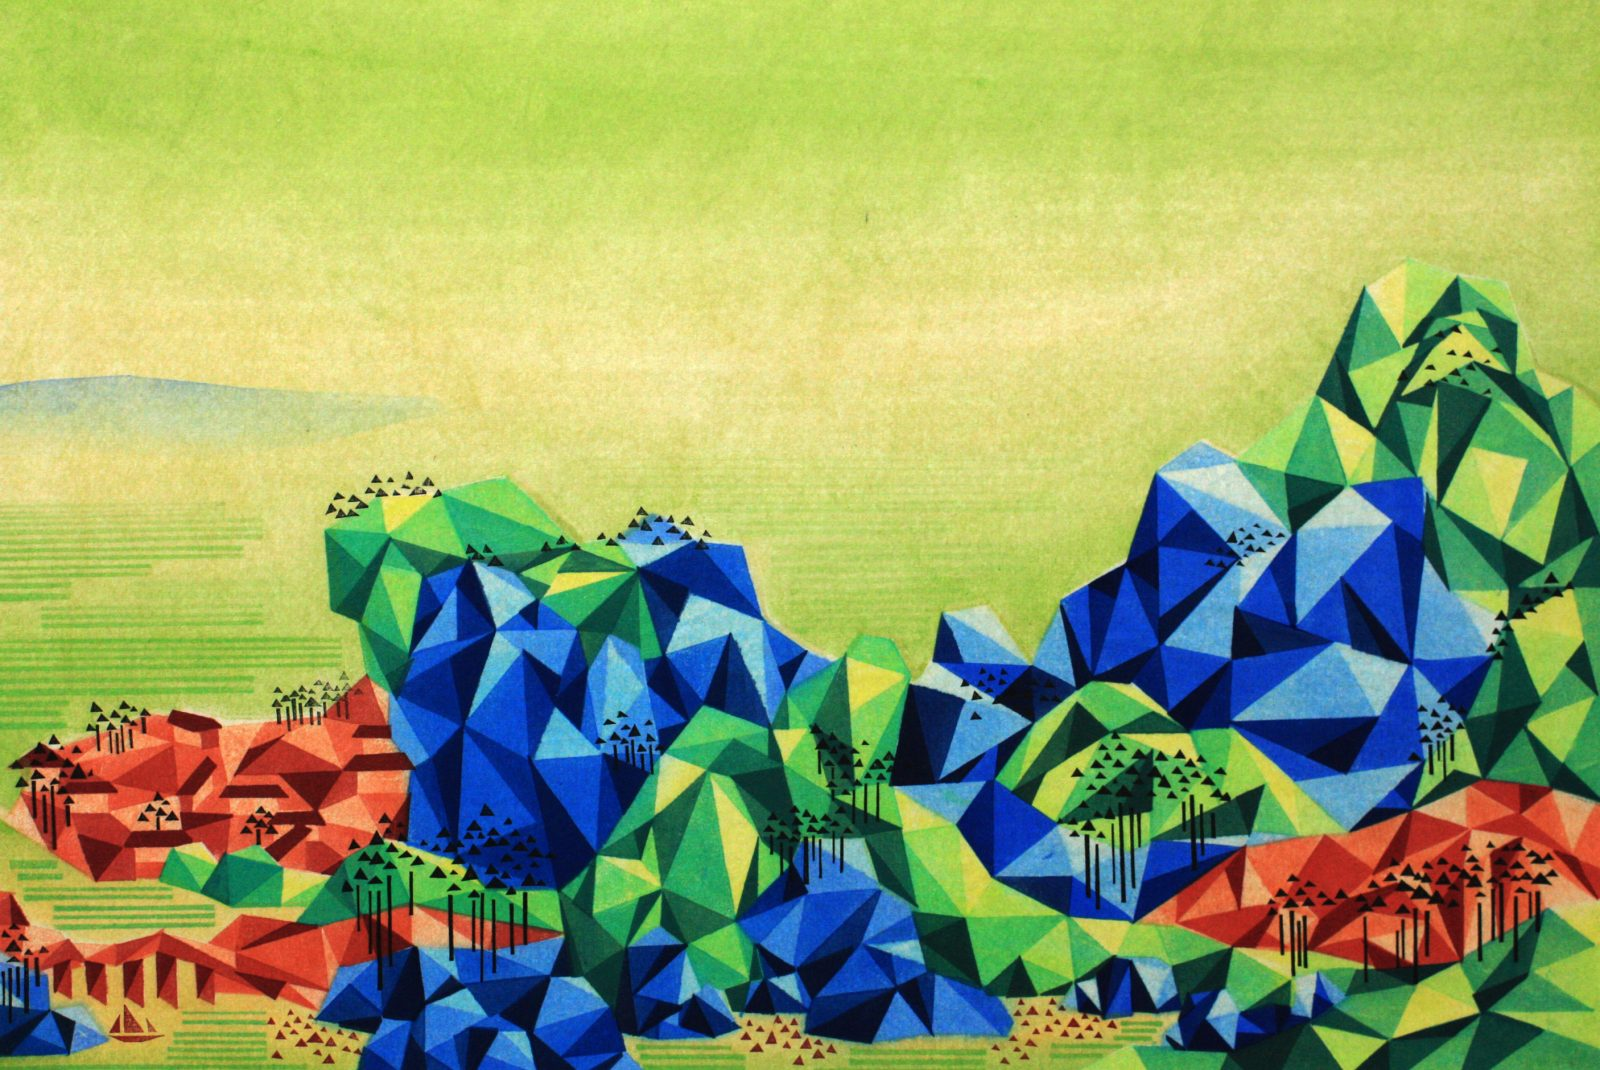 Reconstructed Landscape I 重构山水-1,50cm×75cm, Waterbased Woodcut 2014